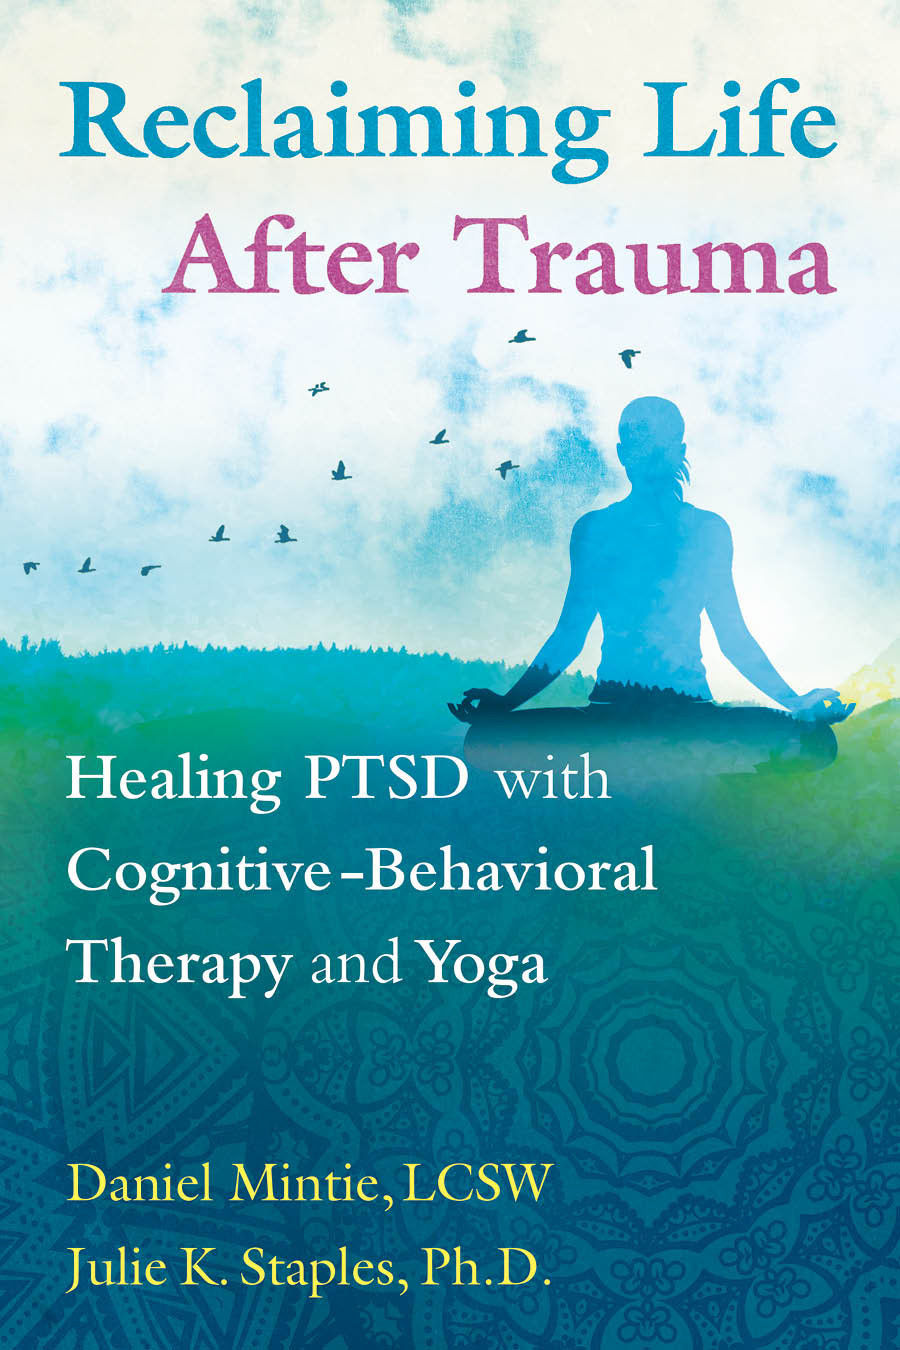 New approach by Taos therapist shows promise for healing trauma